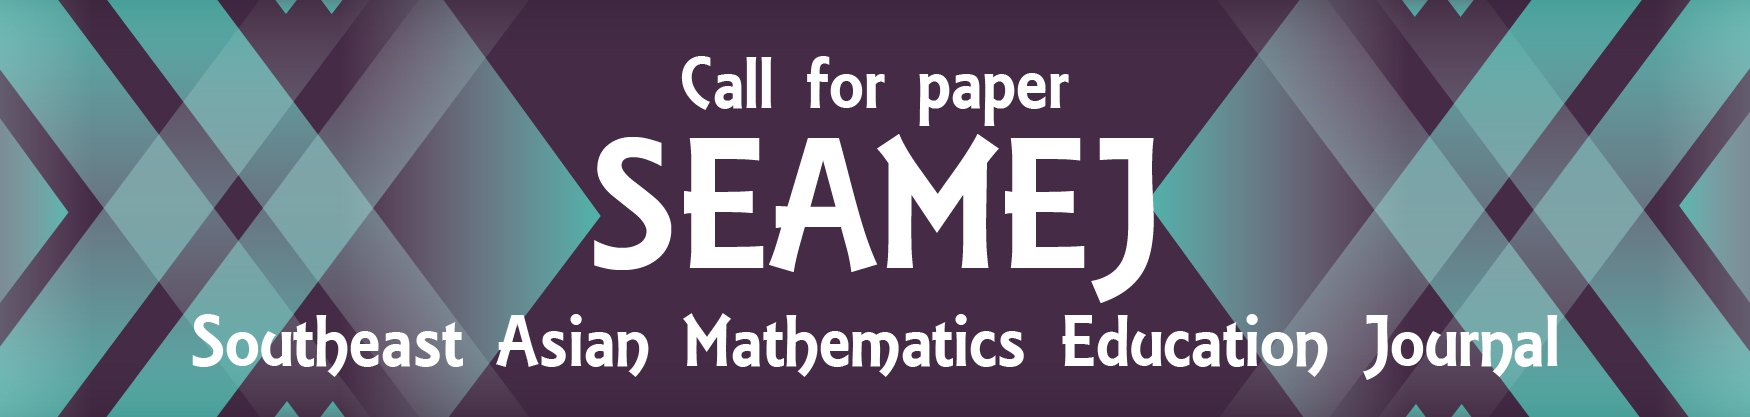 Southeast Asian Mathematics Education Journal